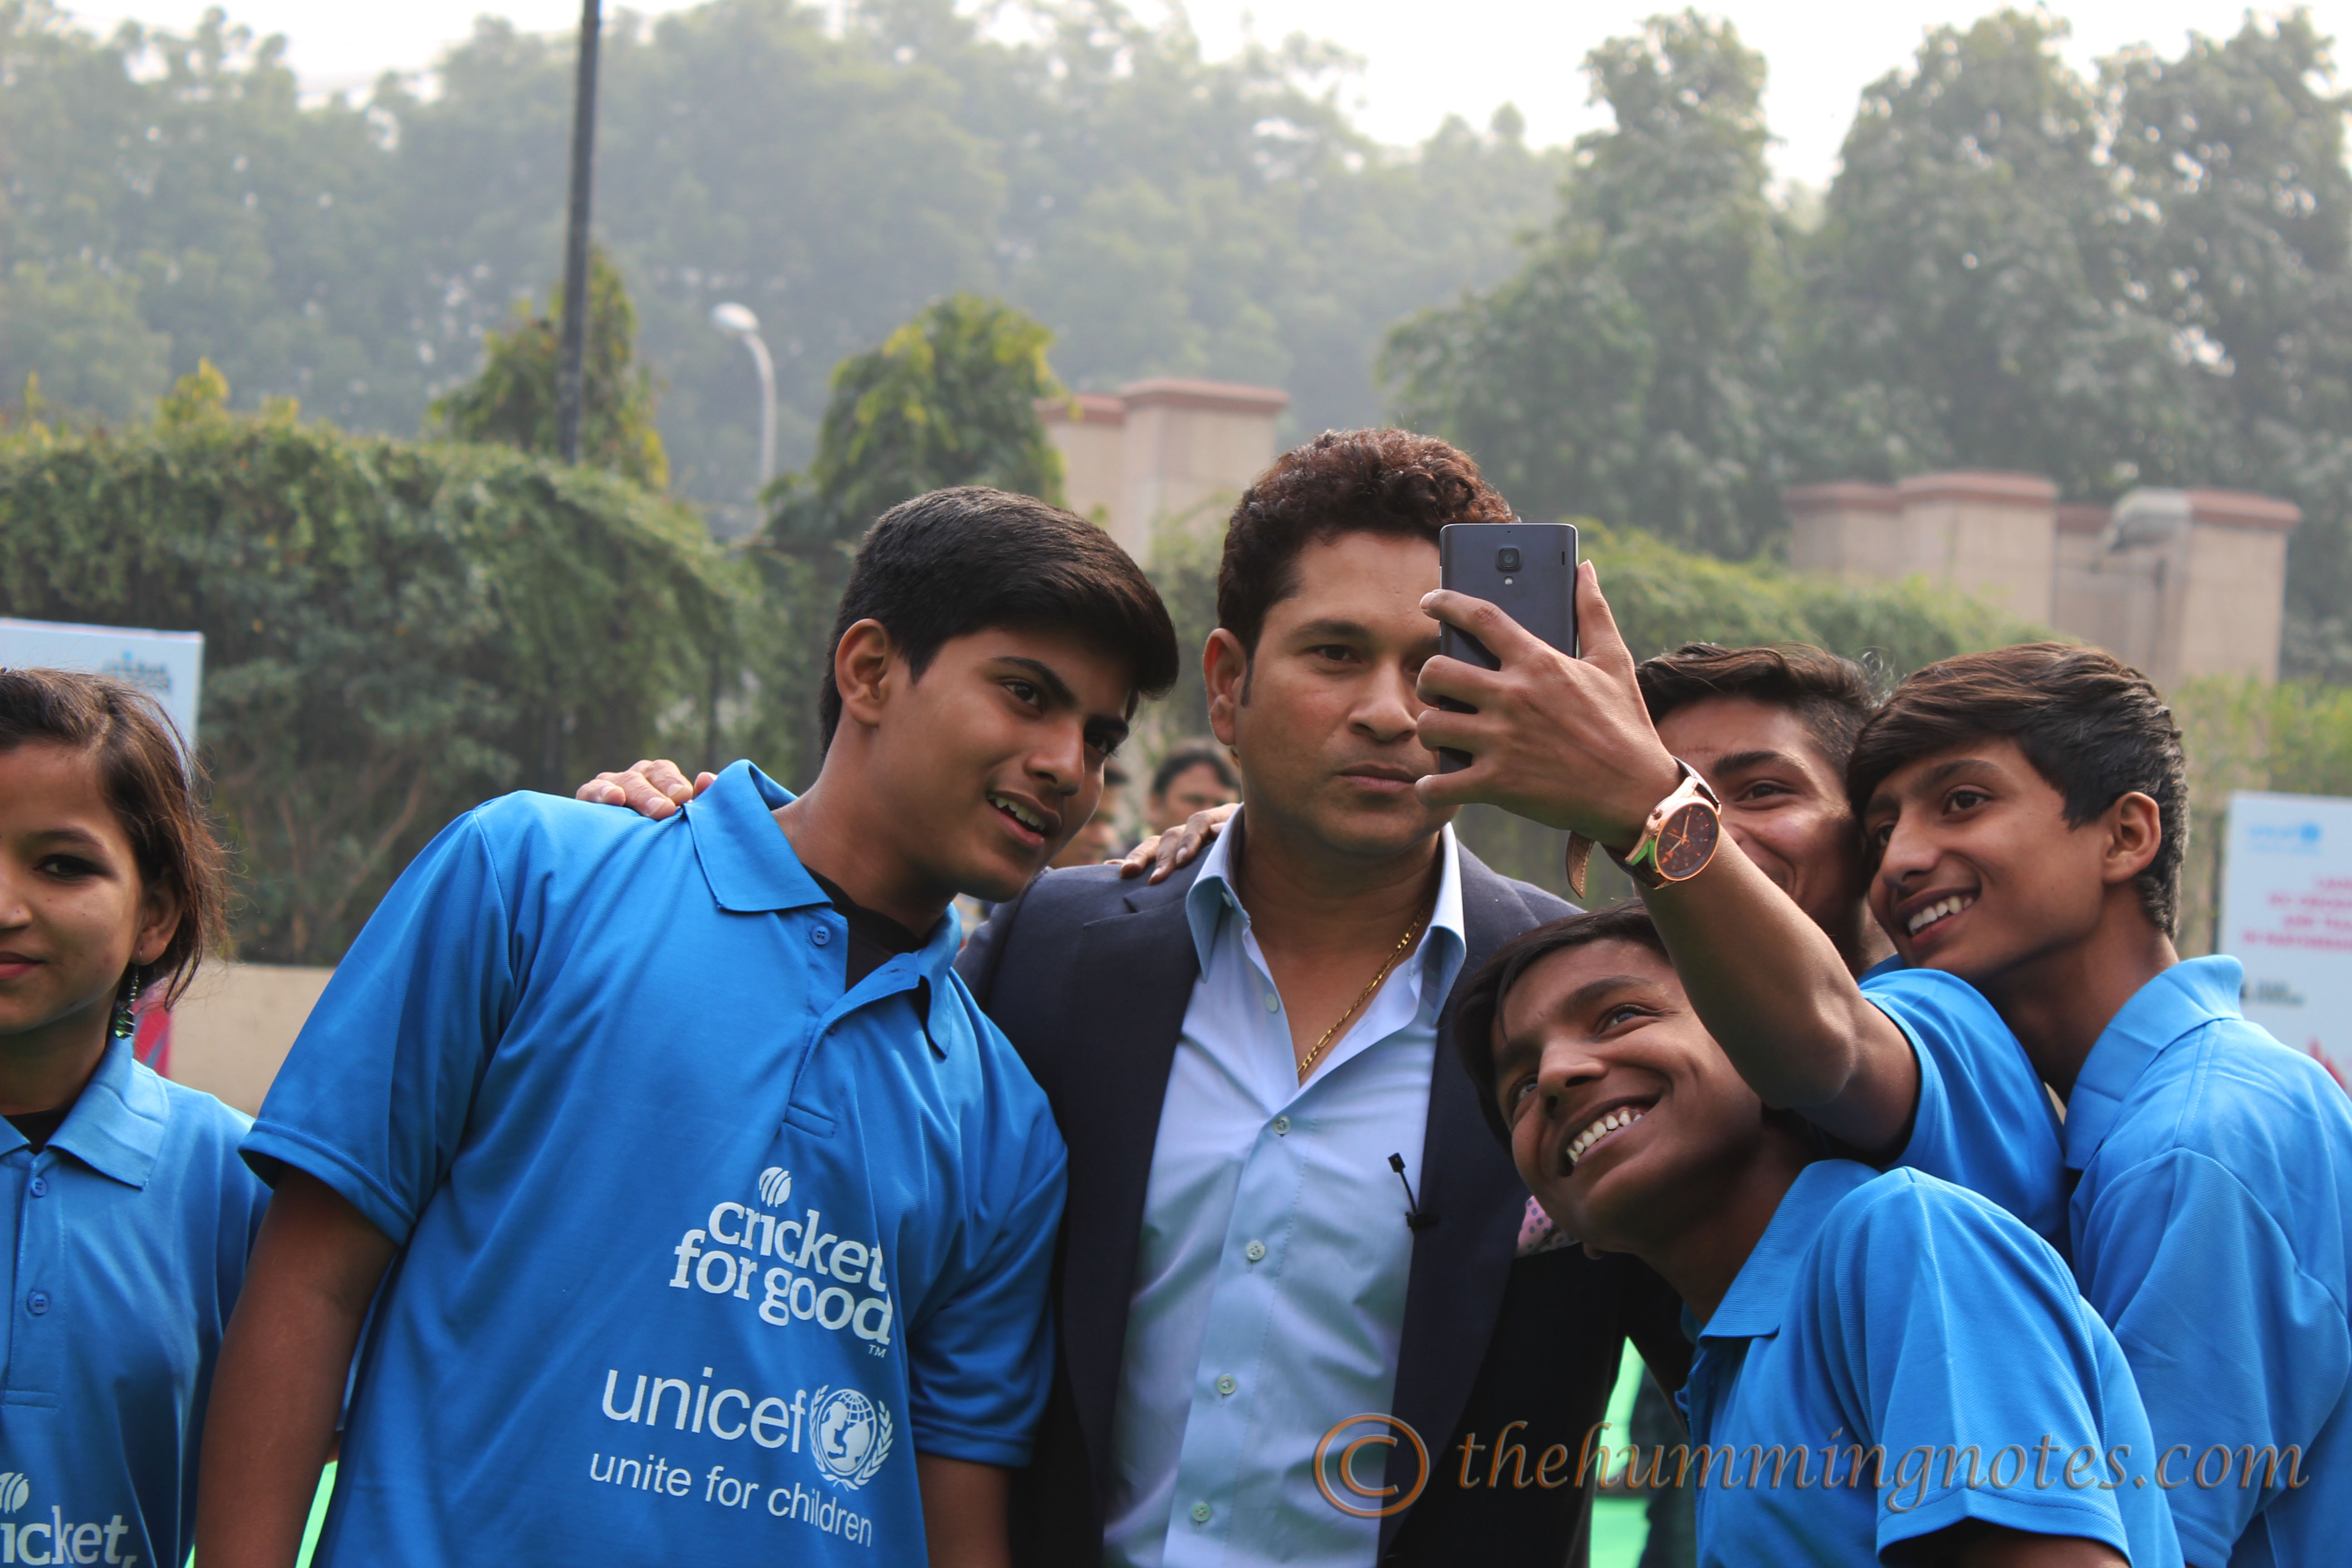 ICC Cricket for Good_selfie with kids